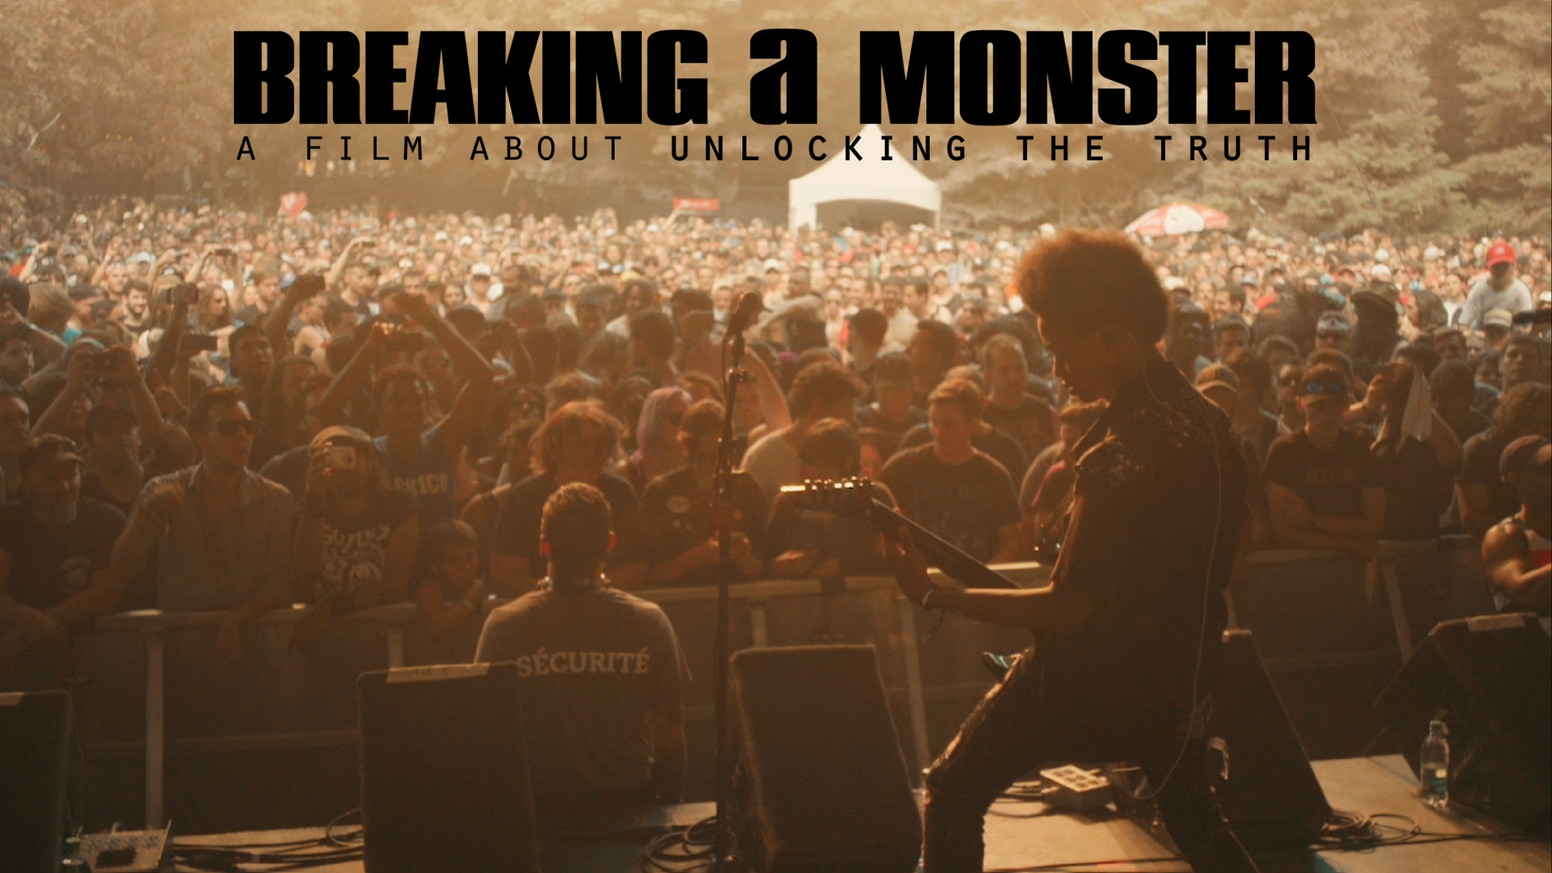 BREAKING A MONSTER needs your help to play in THEATERS!